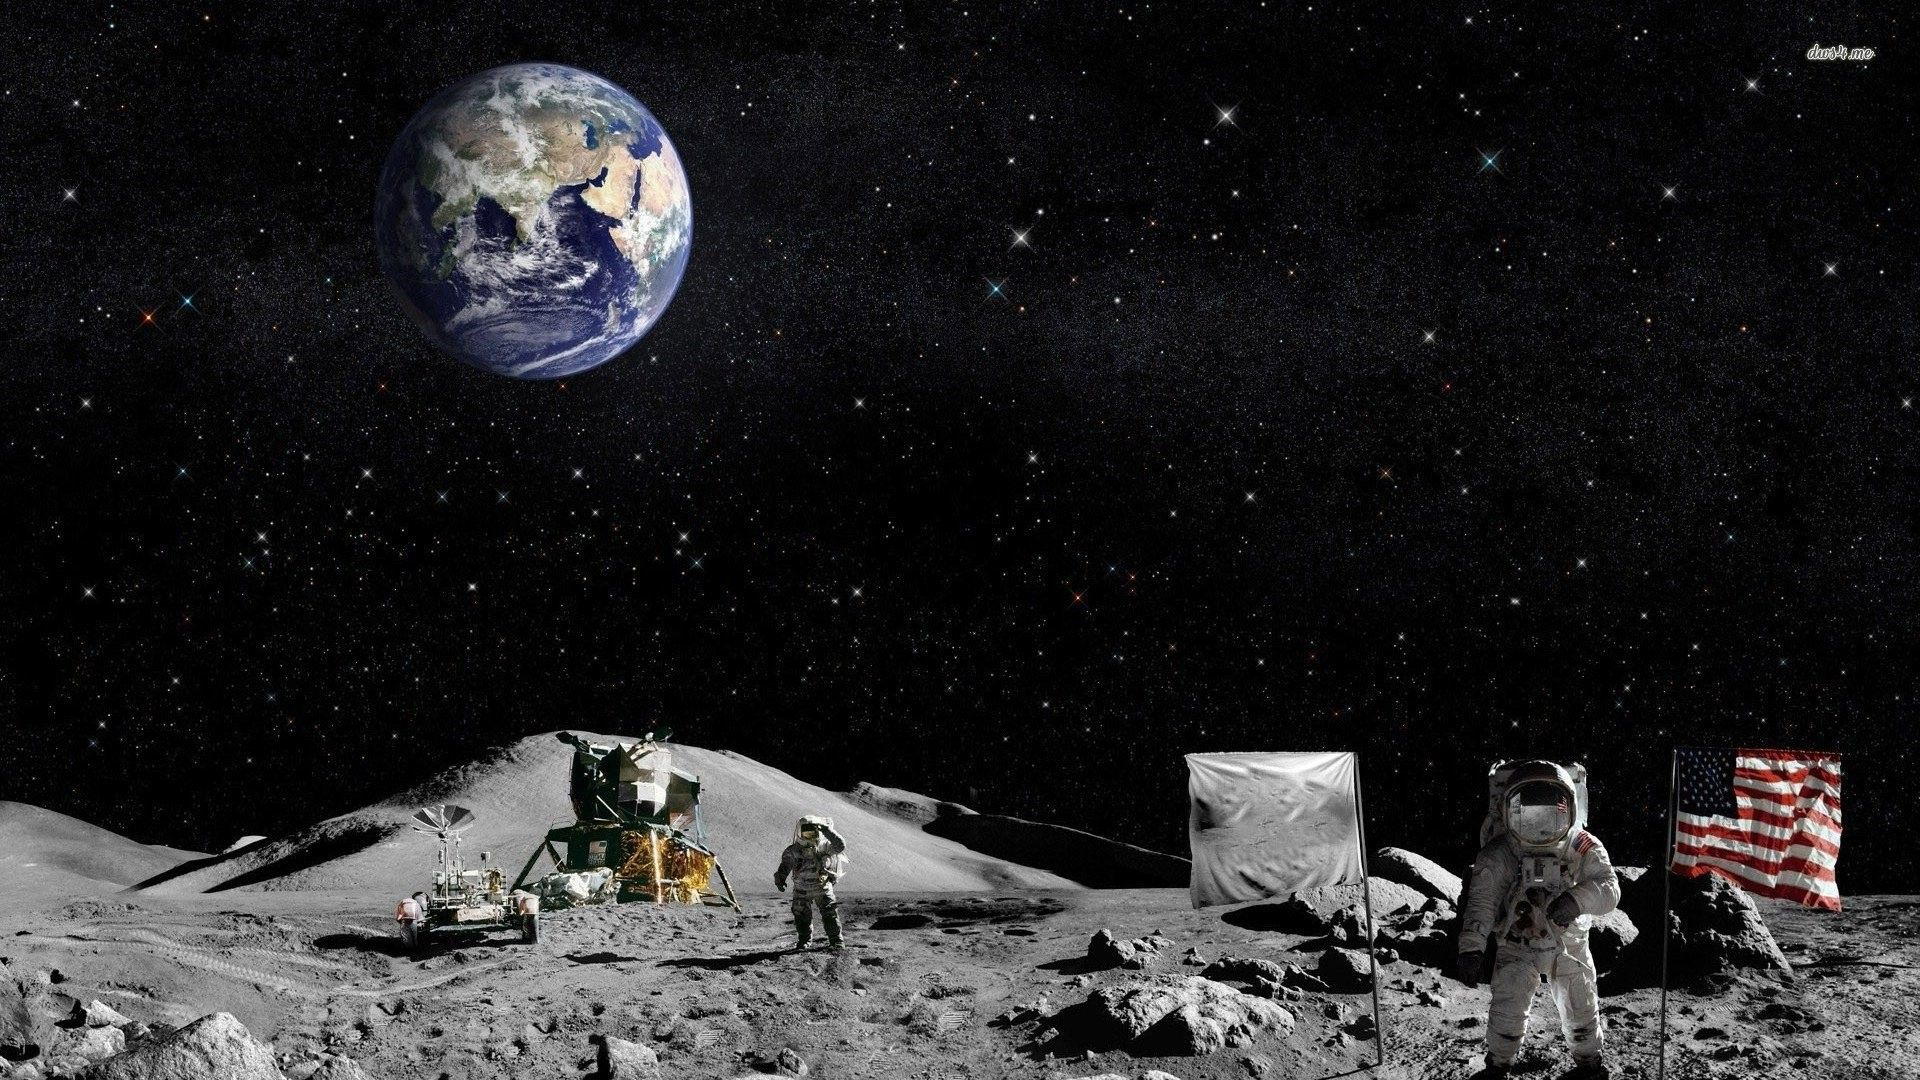 Astronaut On Moon Wallpapers Top Free Astronaut On Moon